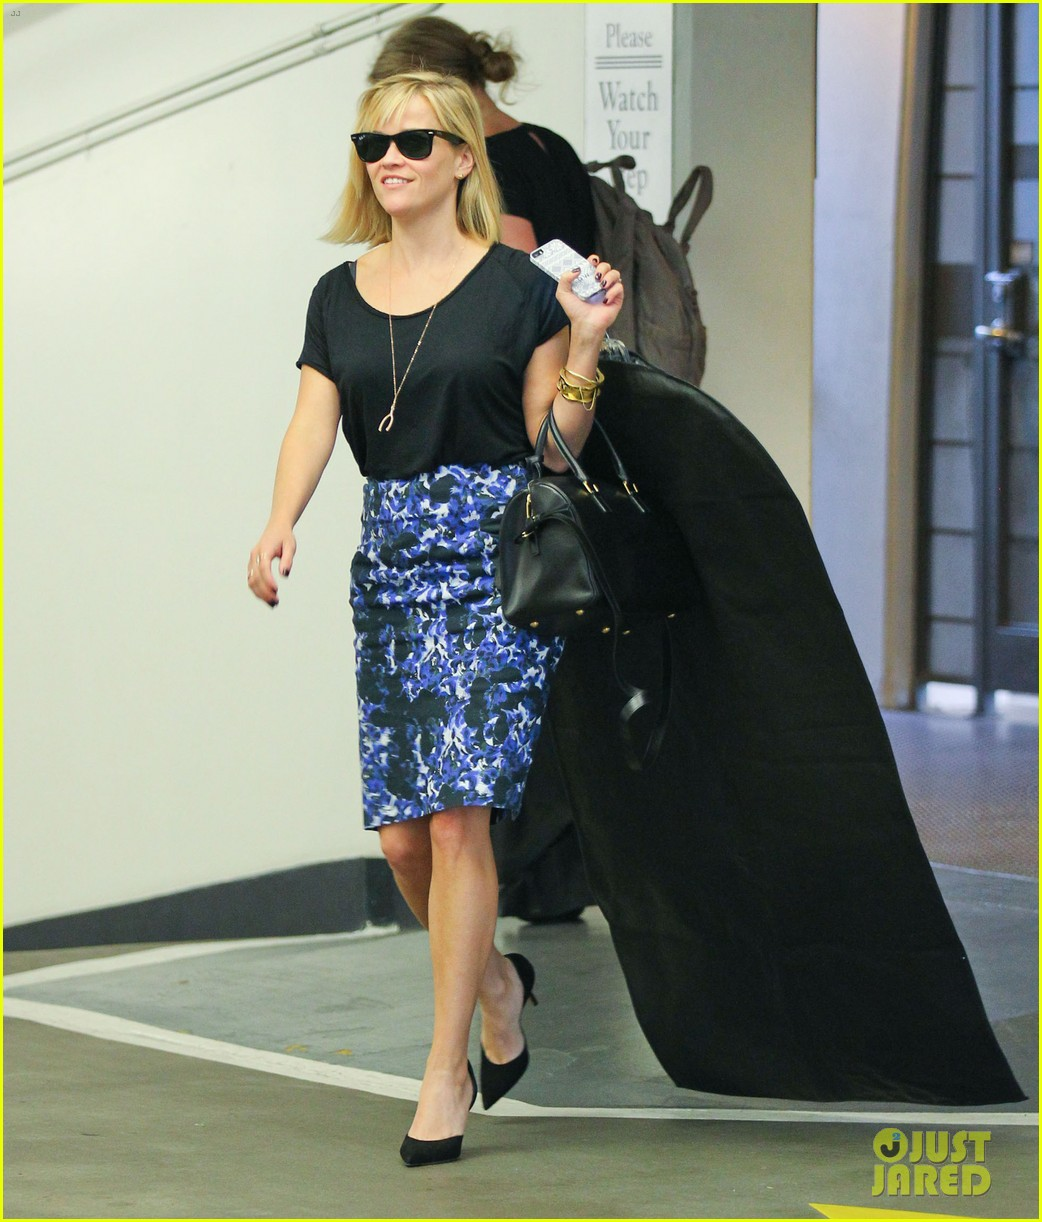 reese witherspoon steps out after the intern news 083033536